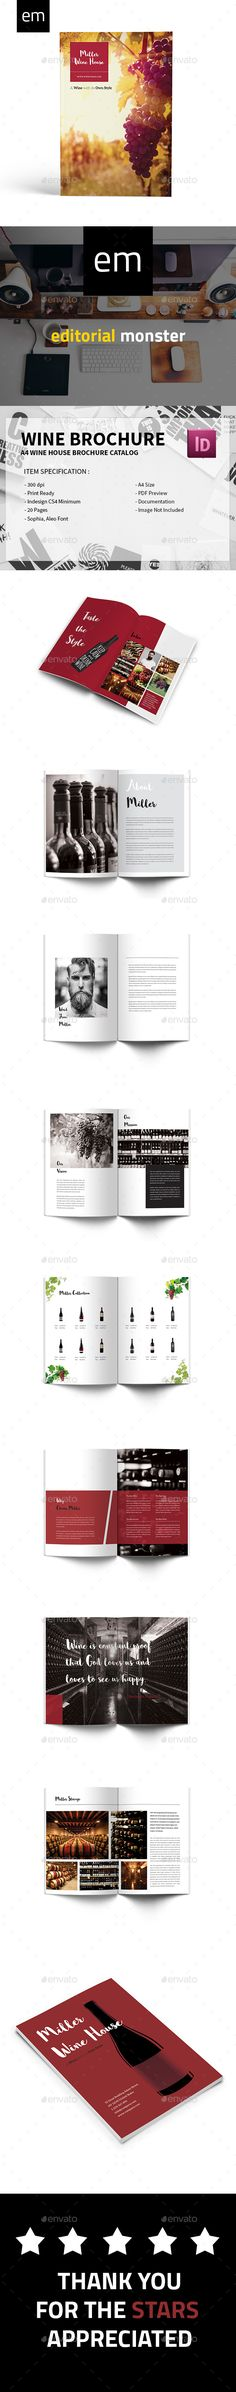 Wine Brochure  - InDesign Template • Only available here ➝ http://graphicriver.net/item/wine-brochure/16869834?ref=pxcr